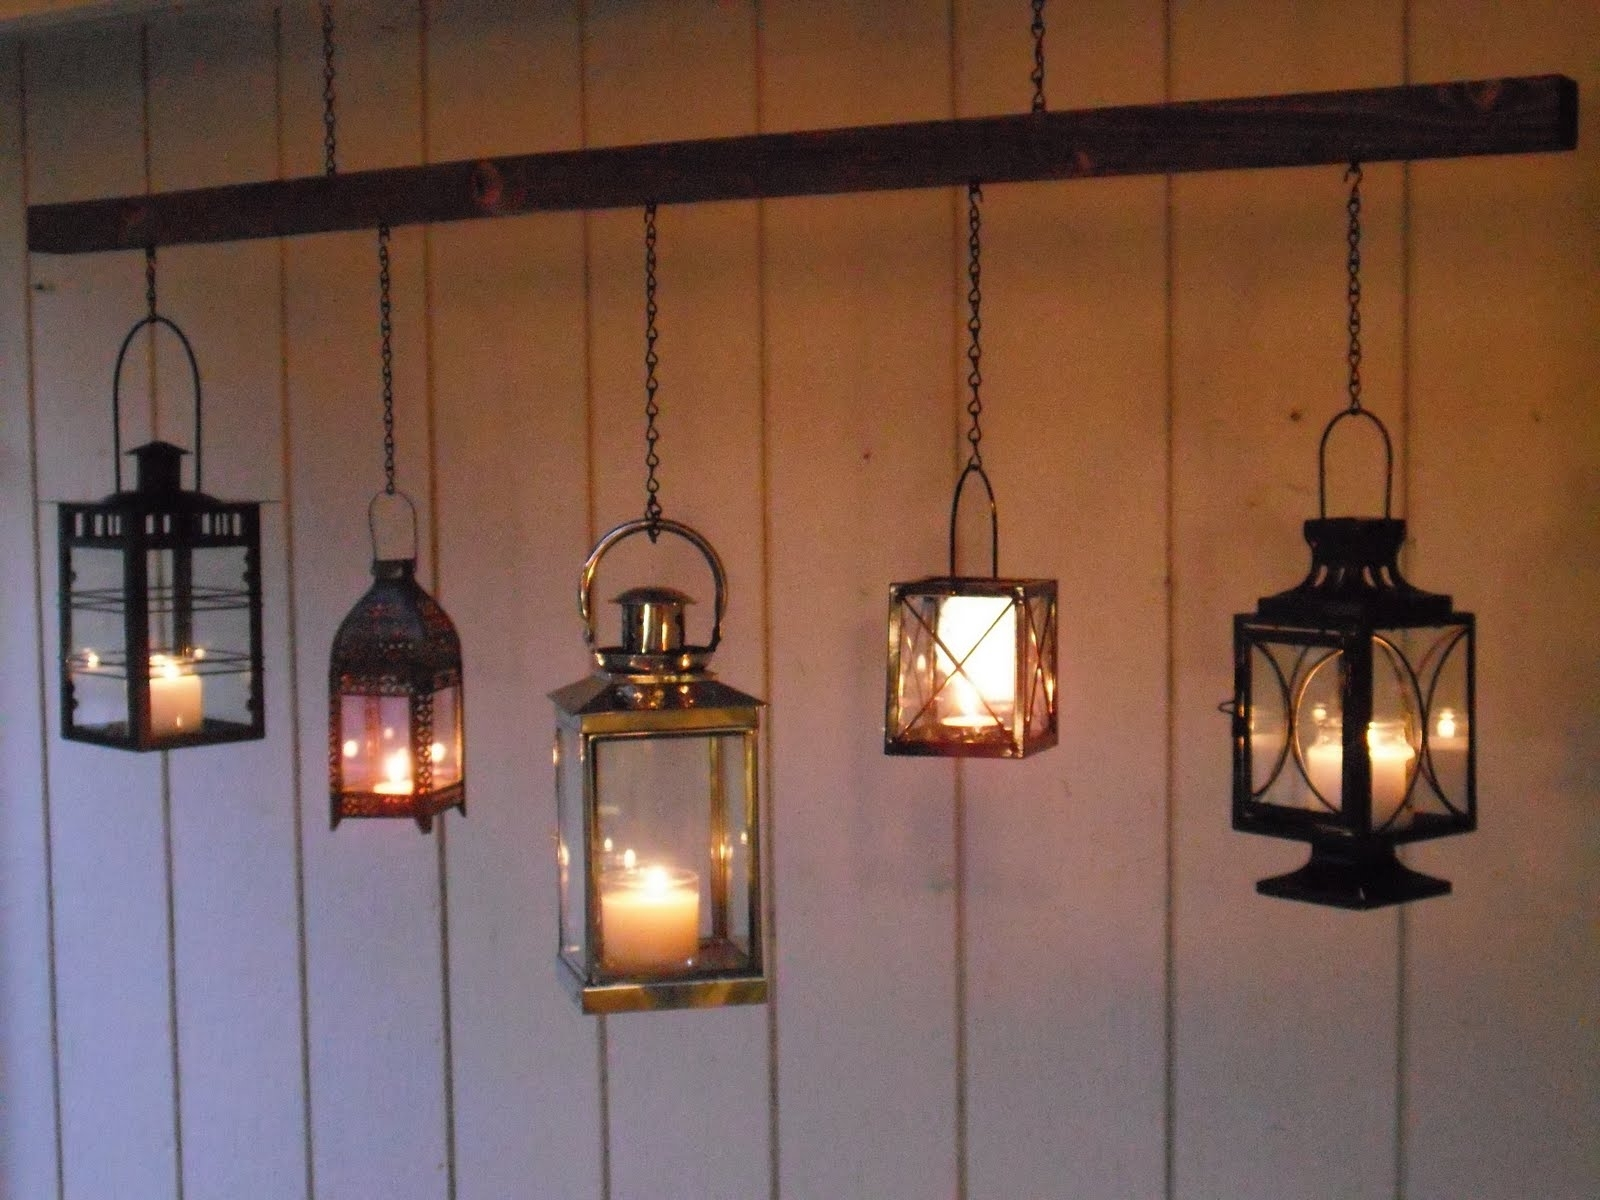 Latest Outdoor Hanging Lanterns For Candles With Regard To Wedding Decoration Hanging Candle Lanterns – Matt And Jentry Home Design (View 8 of 20)